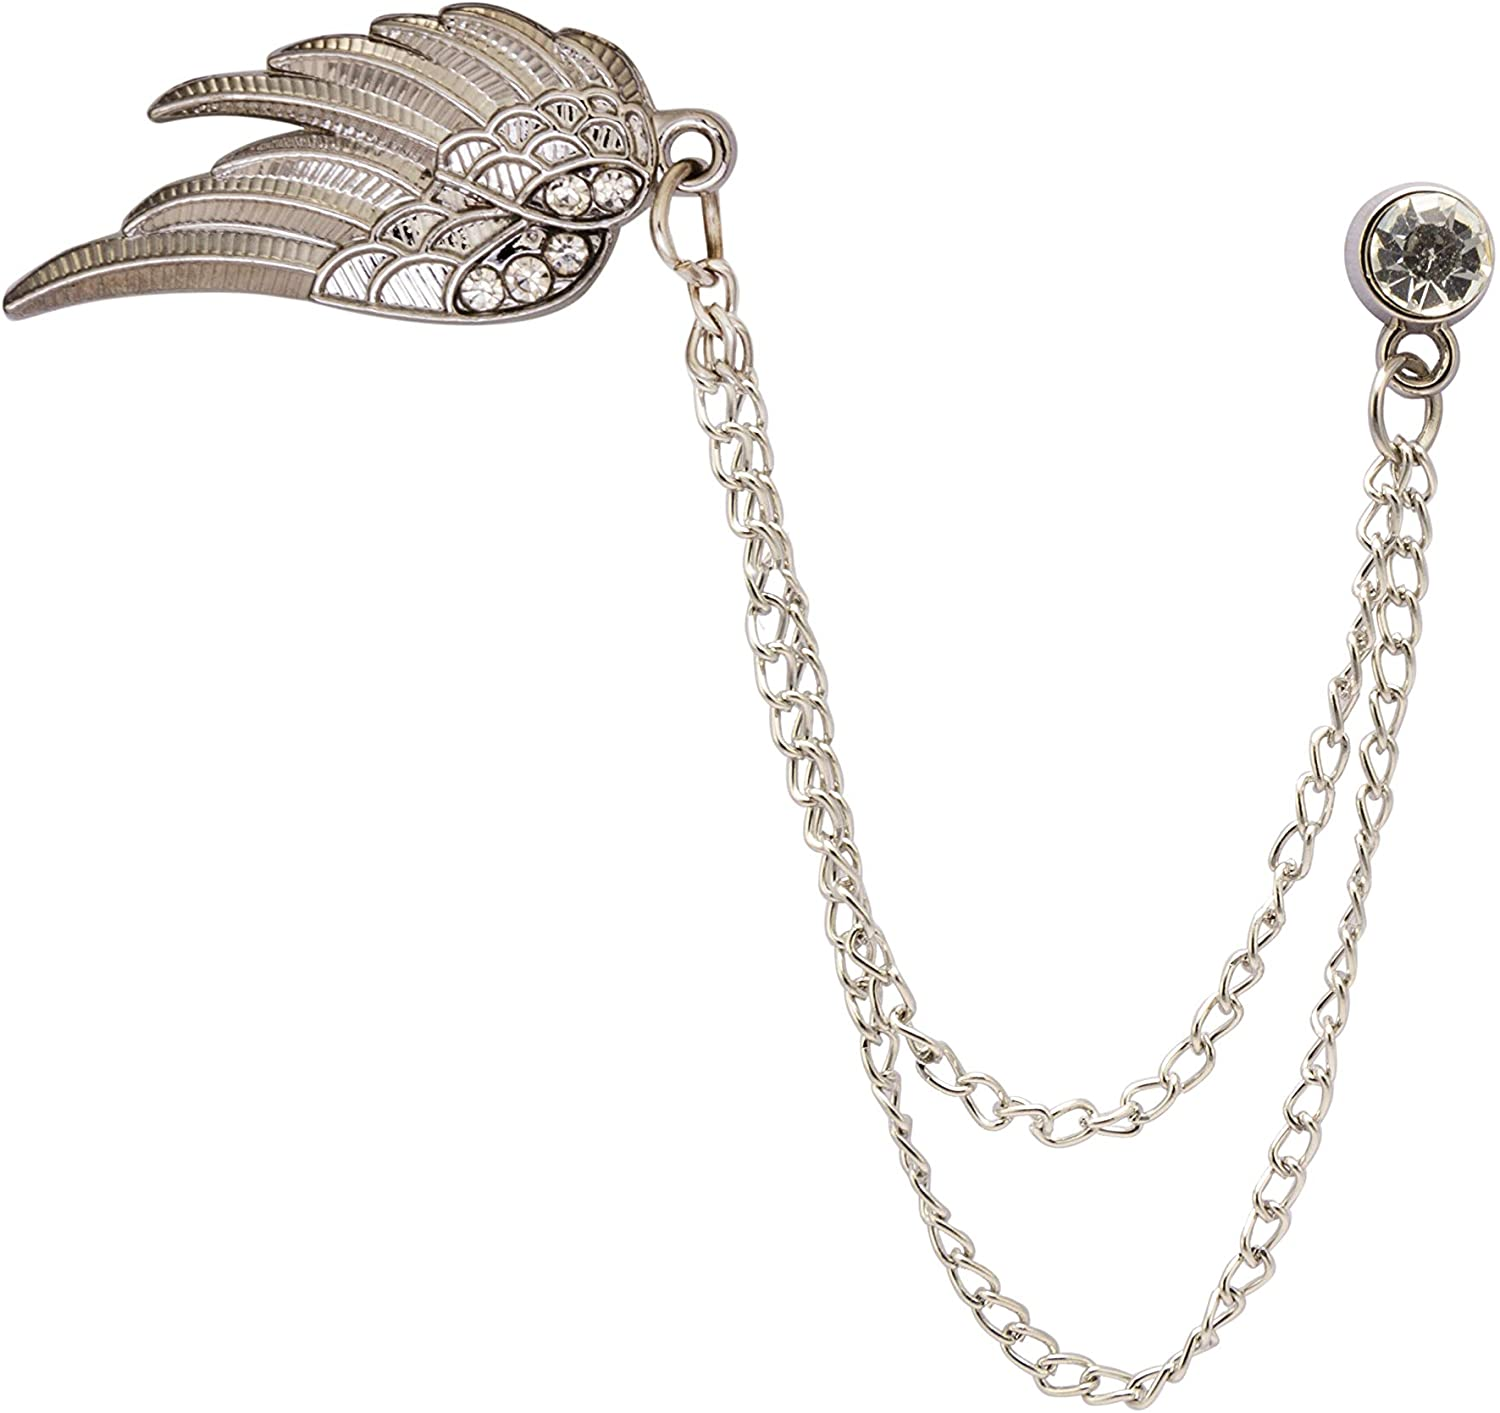 A N KINGPiiN Lapel Pin for Men Angel Wings with Crystal Hanging Chain Brooch Suit Stud, Shirt Studs Men's Accessories (Silver)